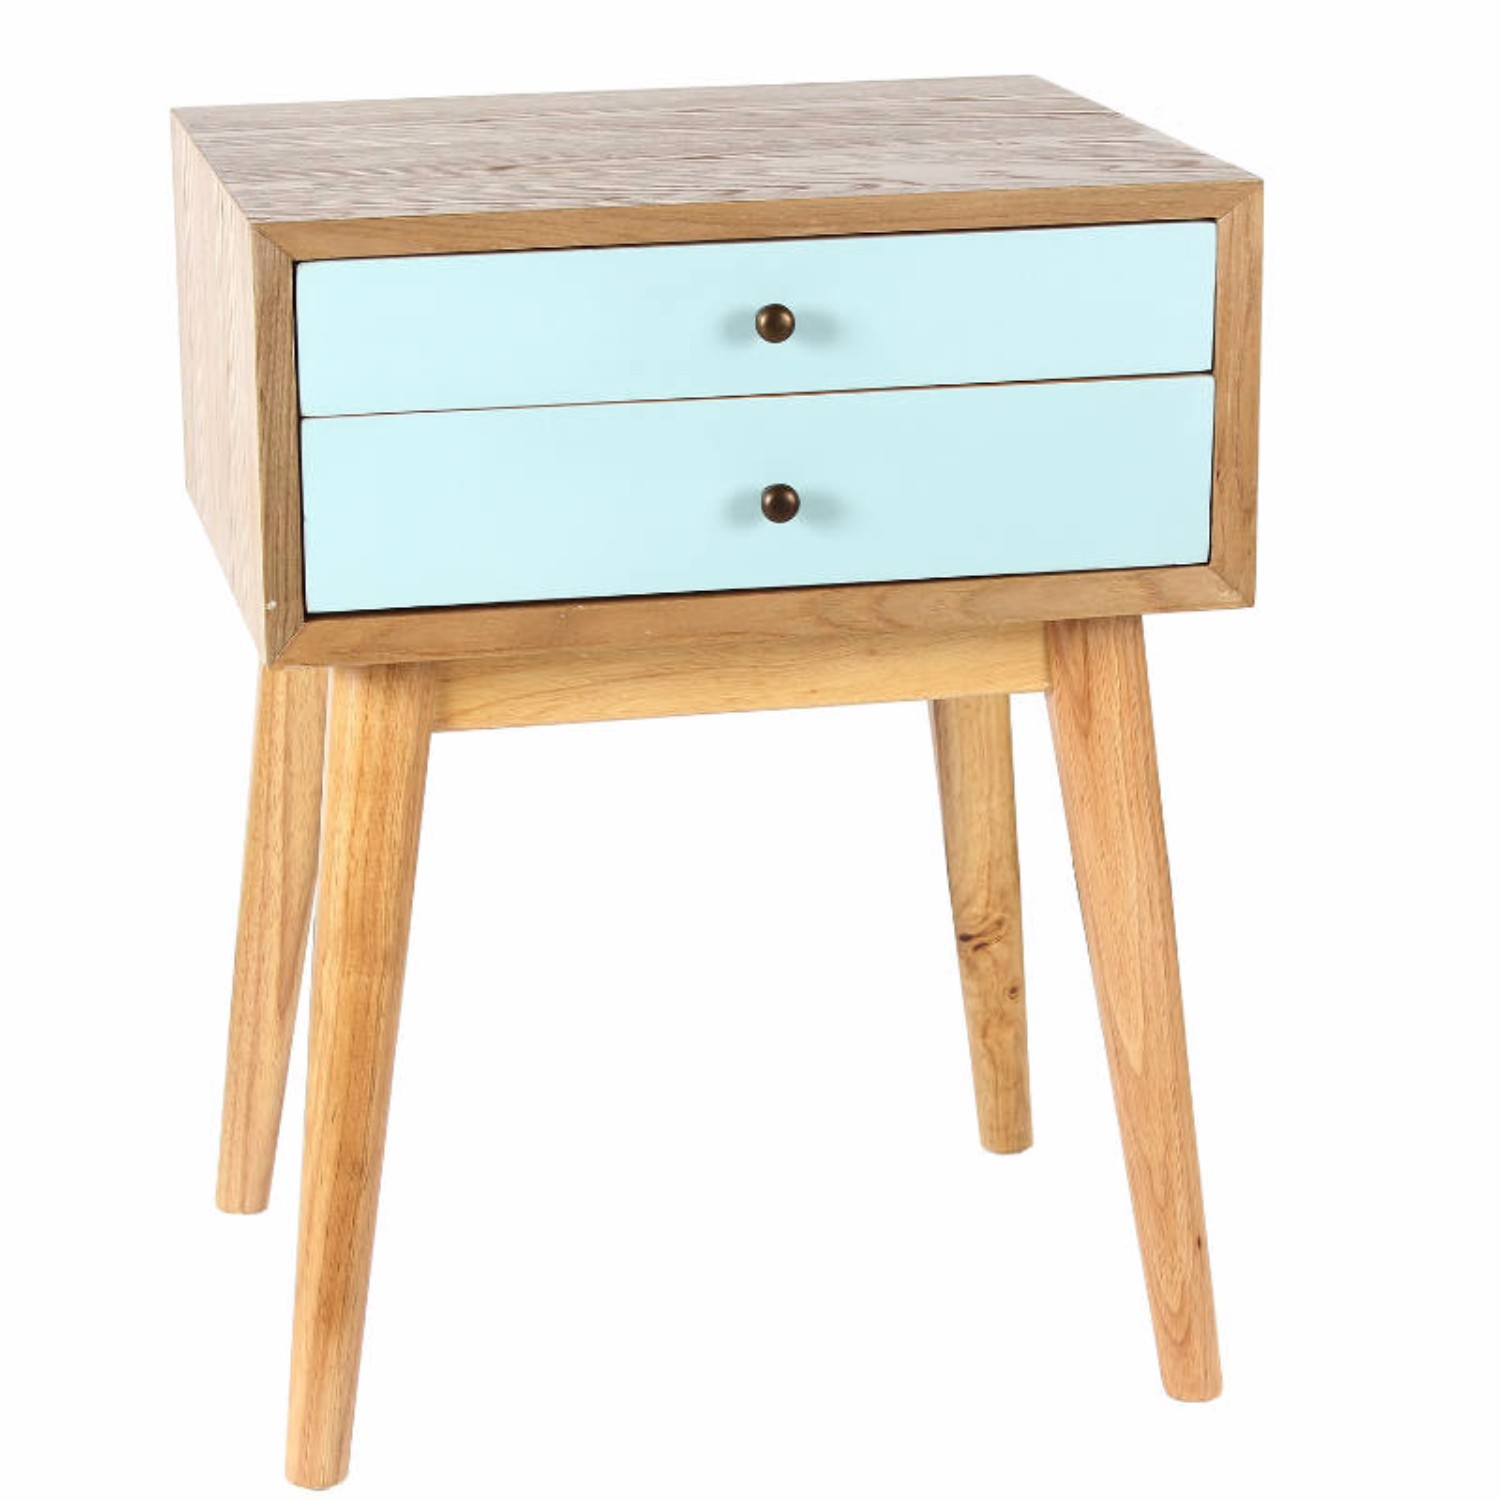 Coffee And End Tables With Storage Trendy Storage Coffee And Side Tables Coffee And Side Tables